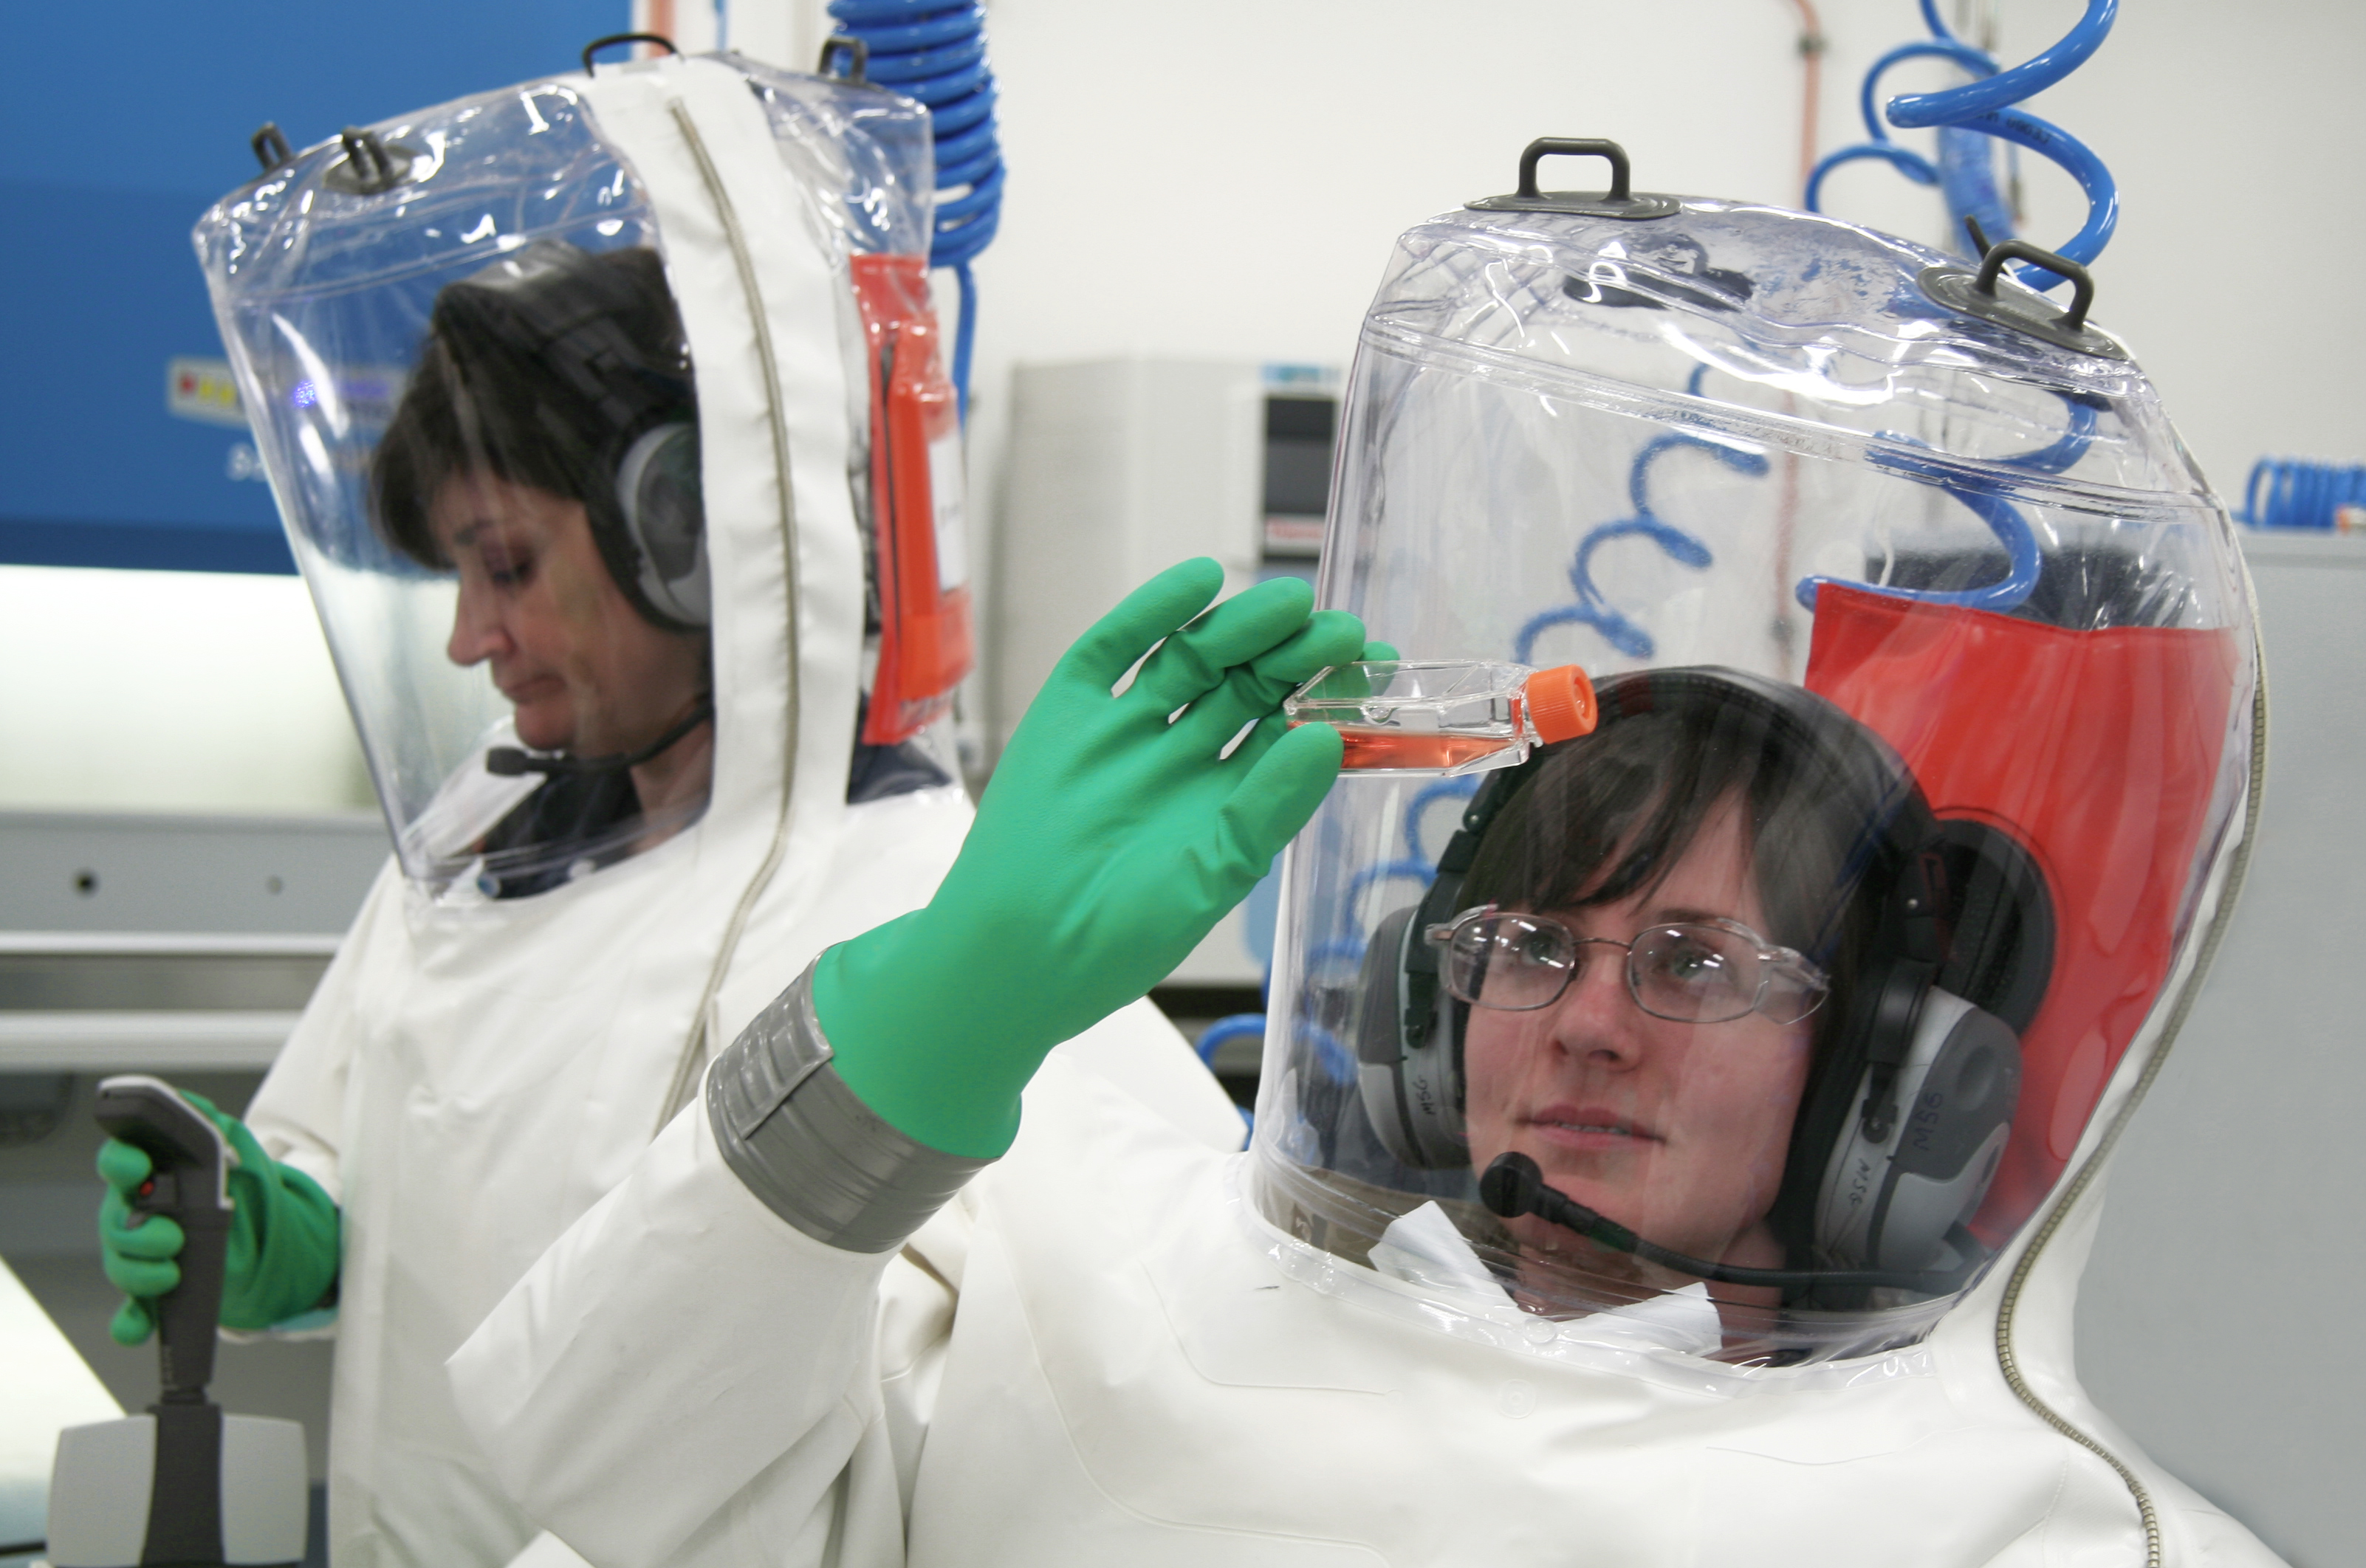 Scientists wearing fully encapsulated suits with their own air supply.